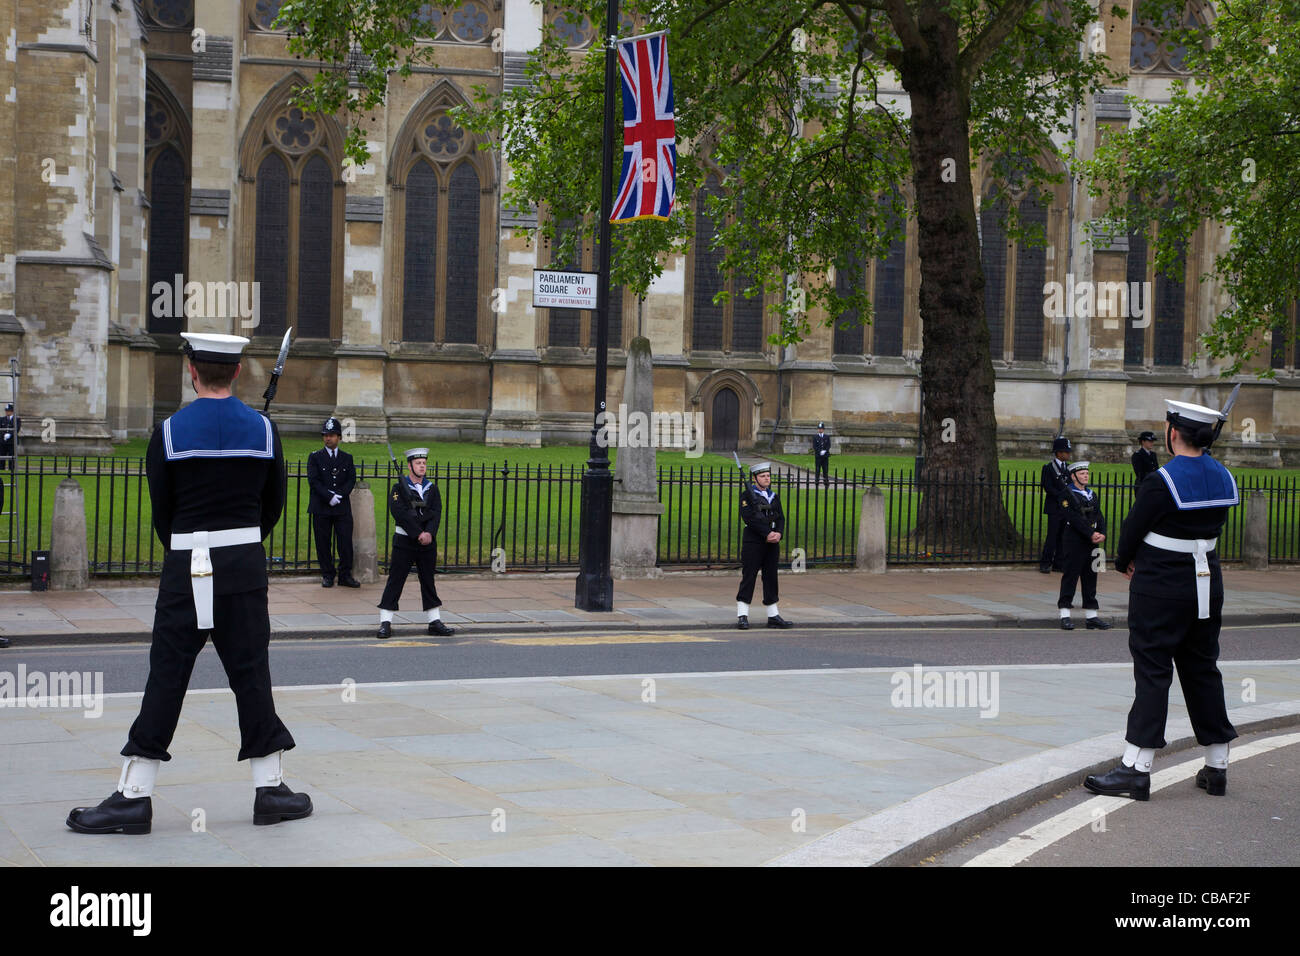 Members of the British Royal Navy and Metropolitan Police stand guard outside Westminster Abbey, marriage of Prince - Stock Image